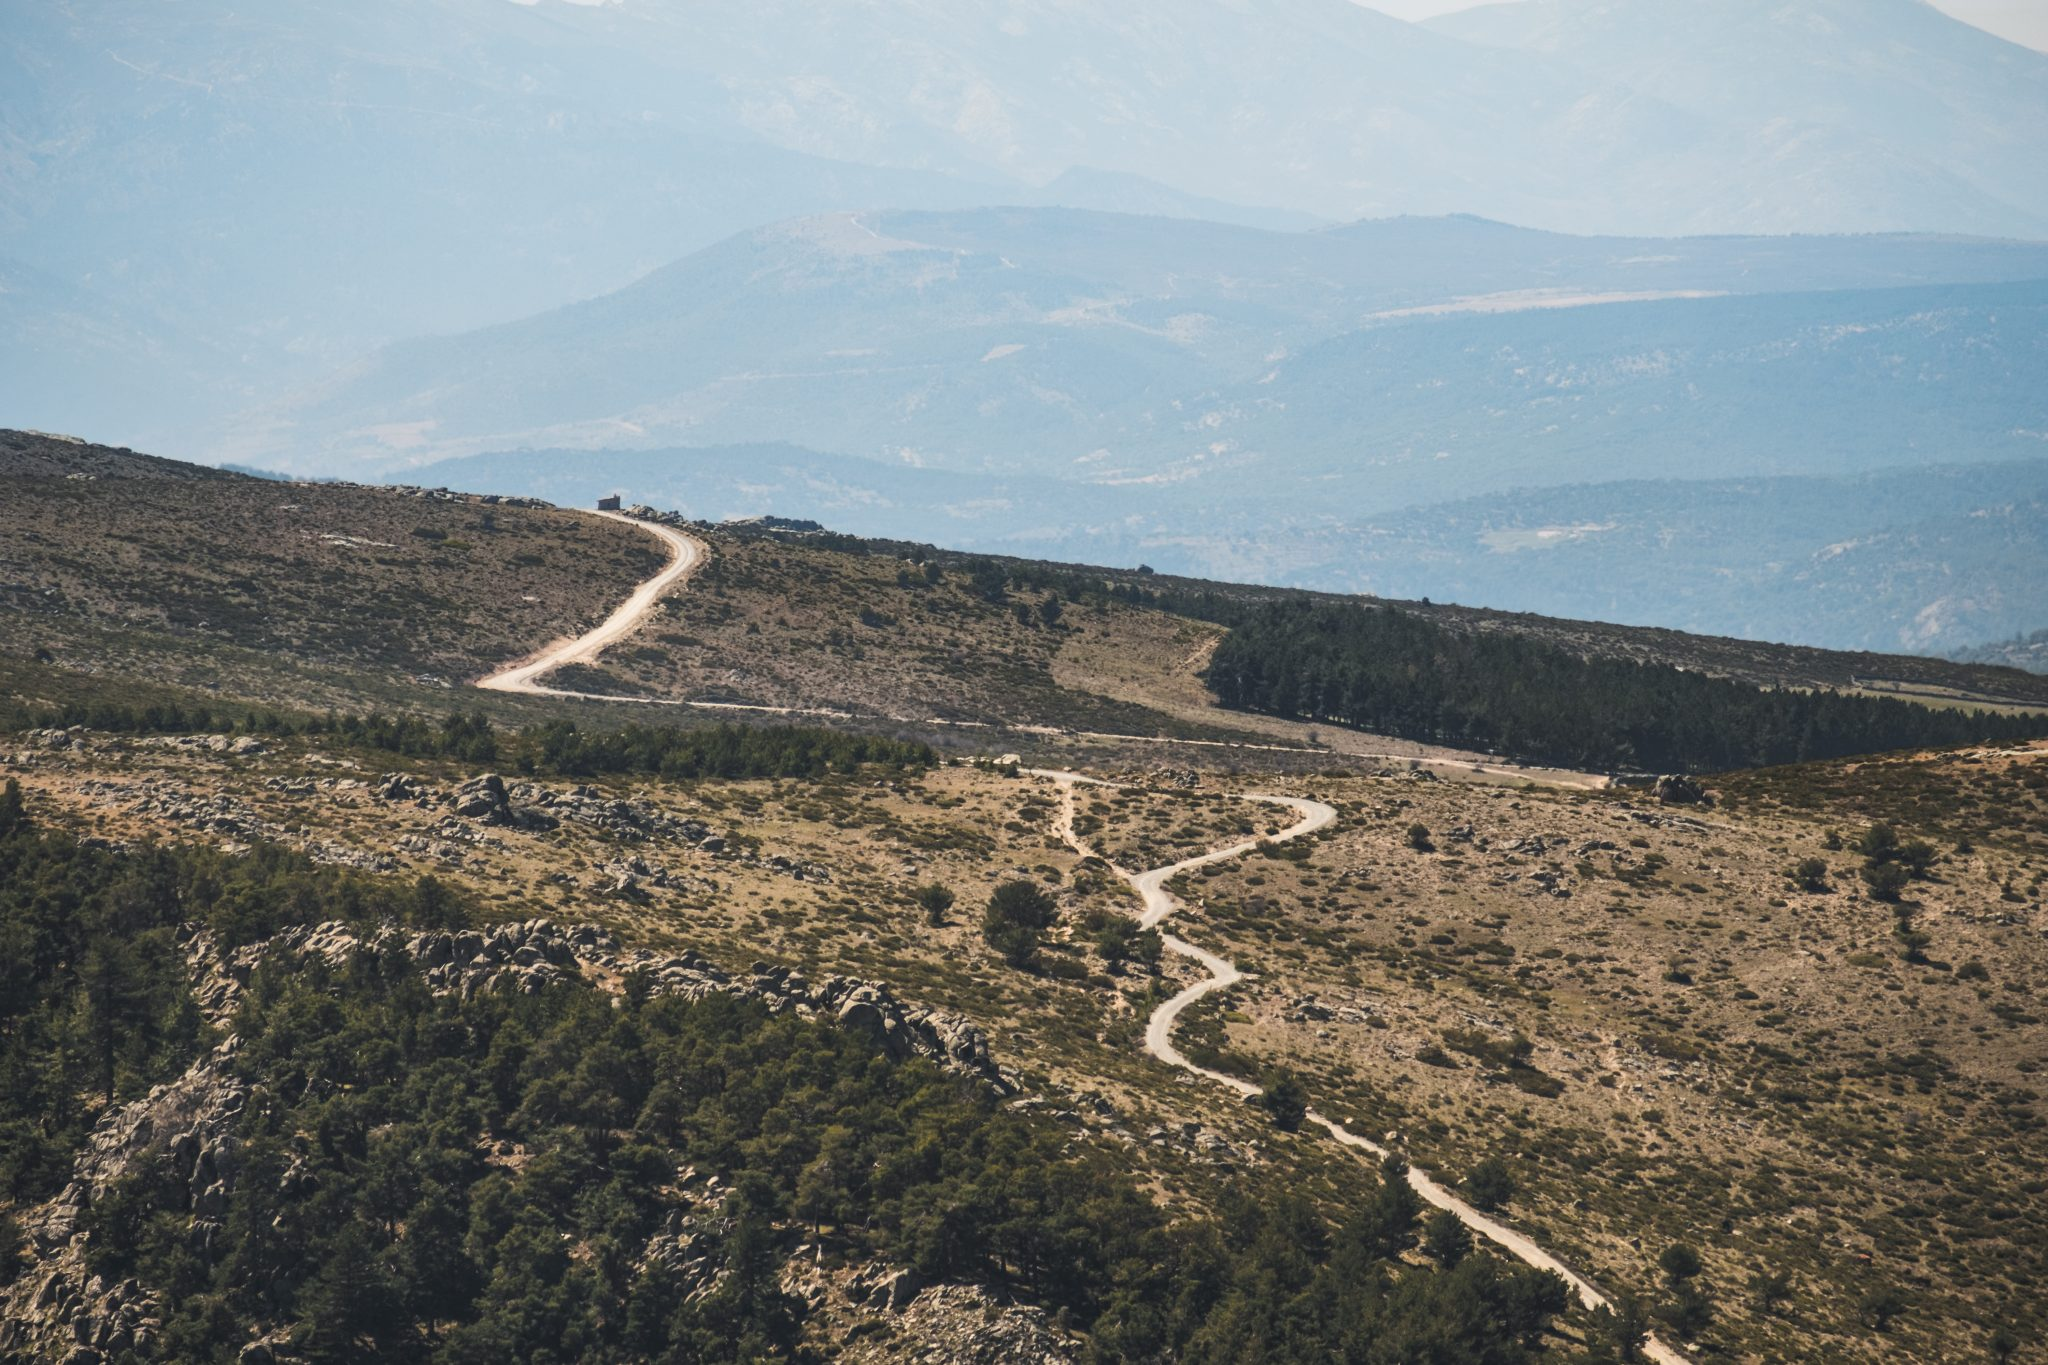 A path between the mountains photo by Jo Kassis